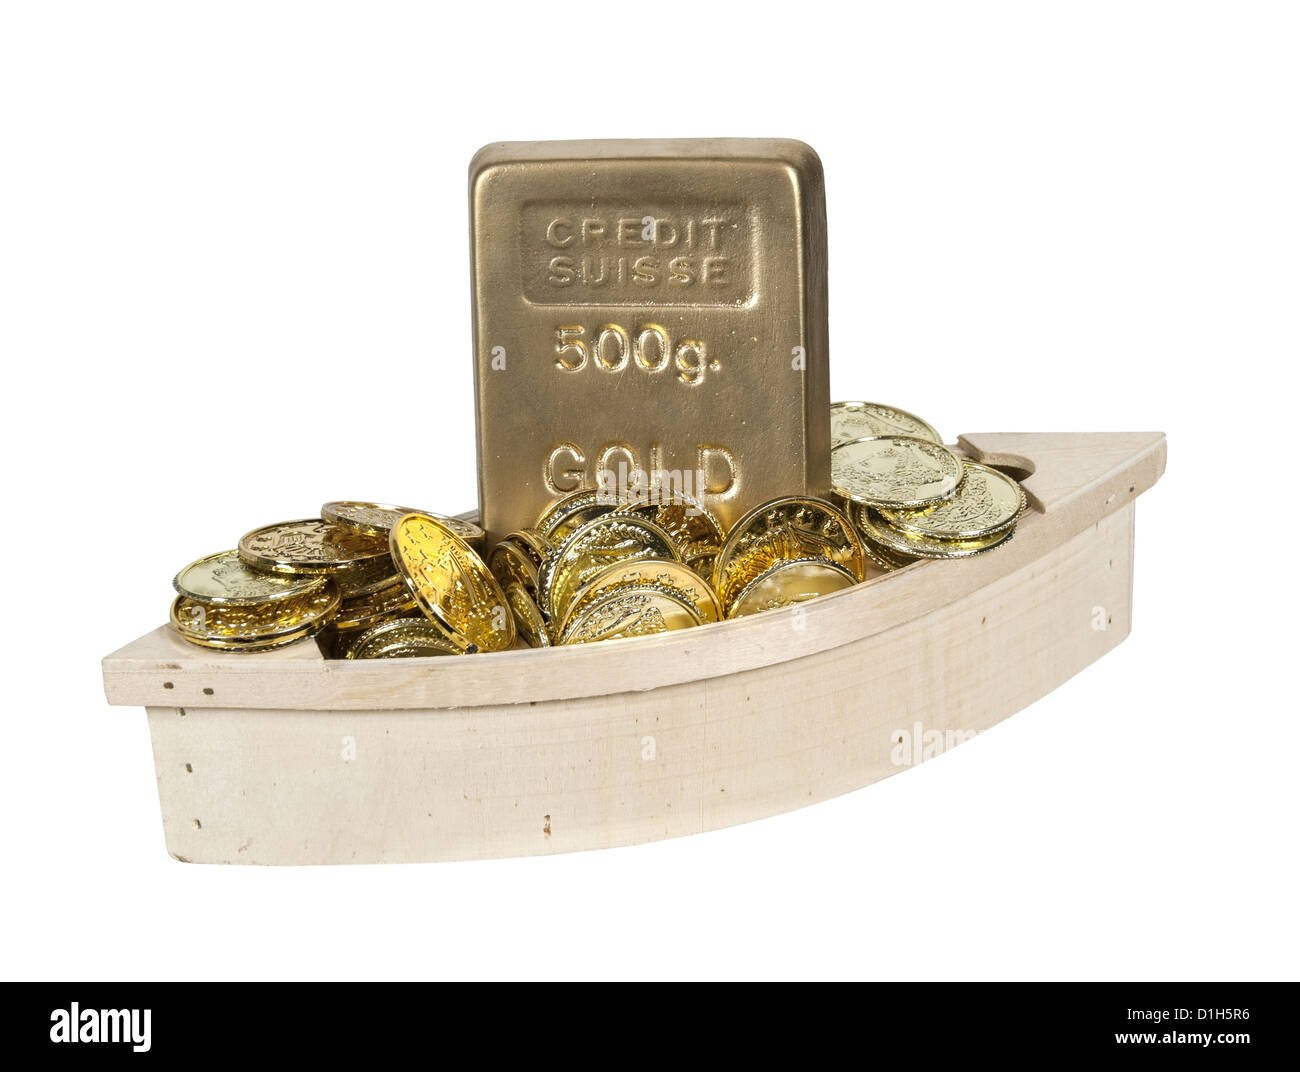 Wooden boat filled with gold coins and gold bars - path included - Stock Image